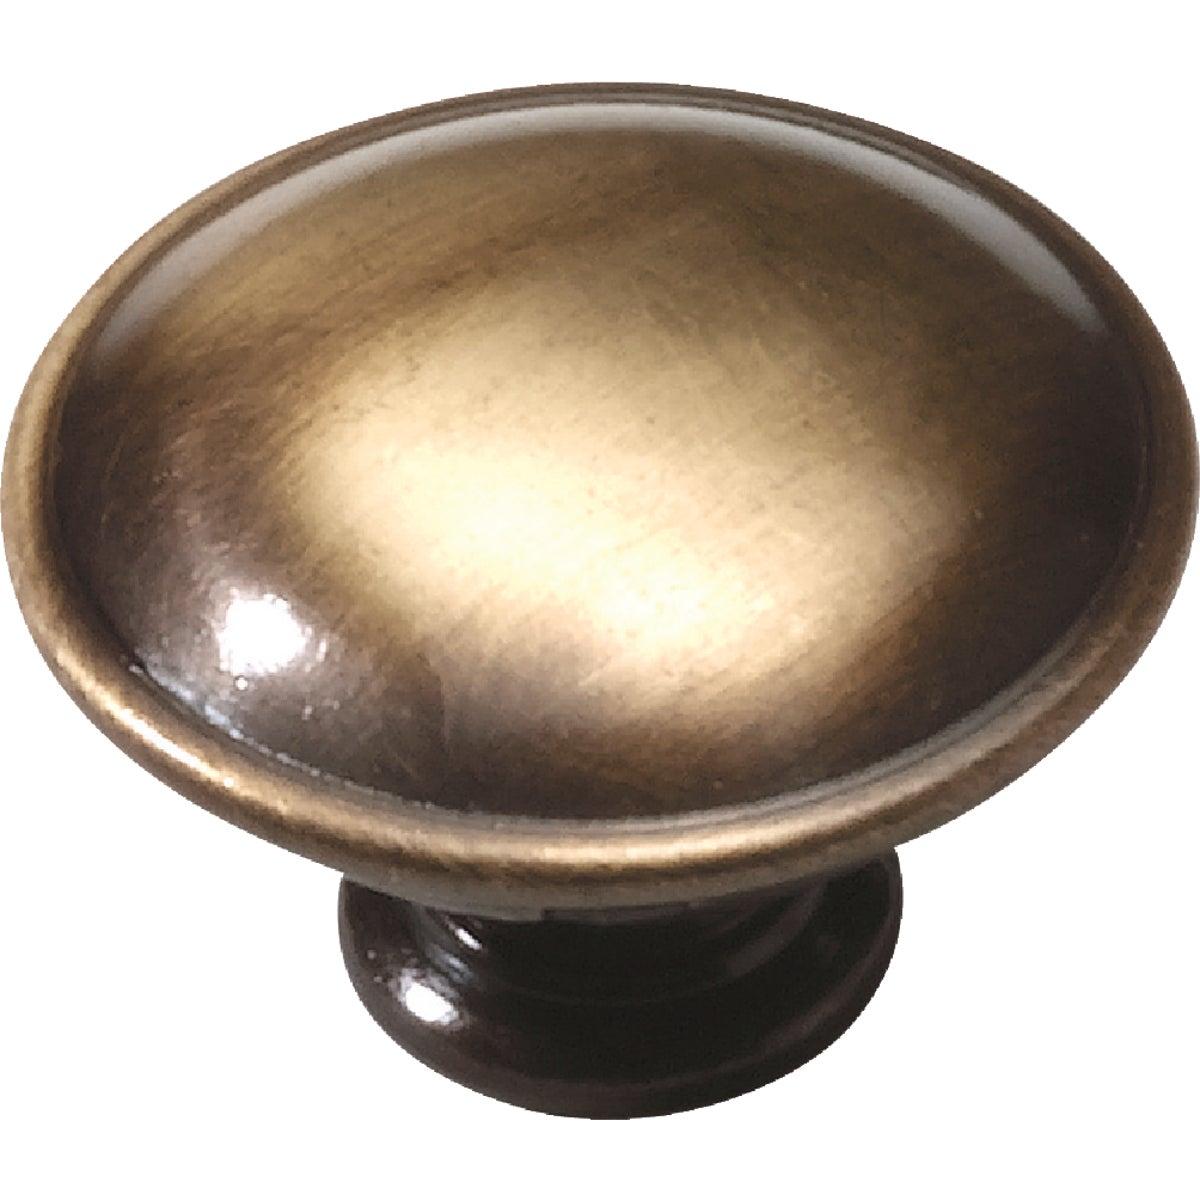 1-1/4 ANTQ BRASS KNOB - 22105 by Laurey Co